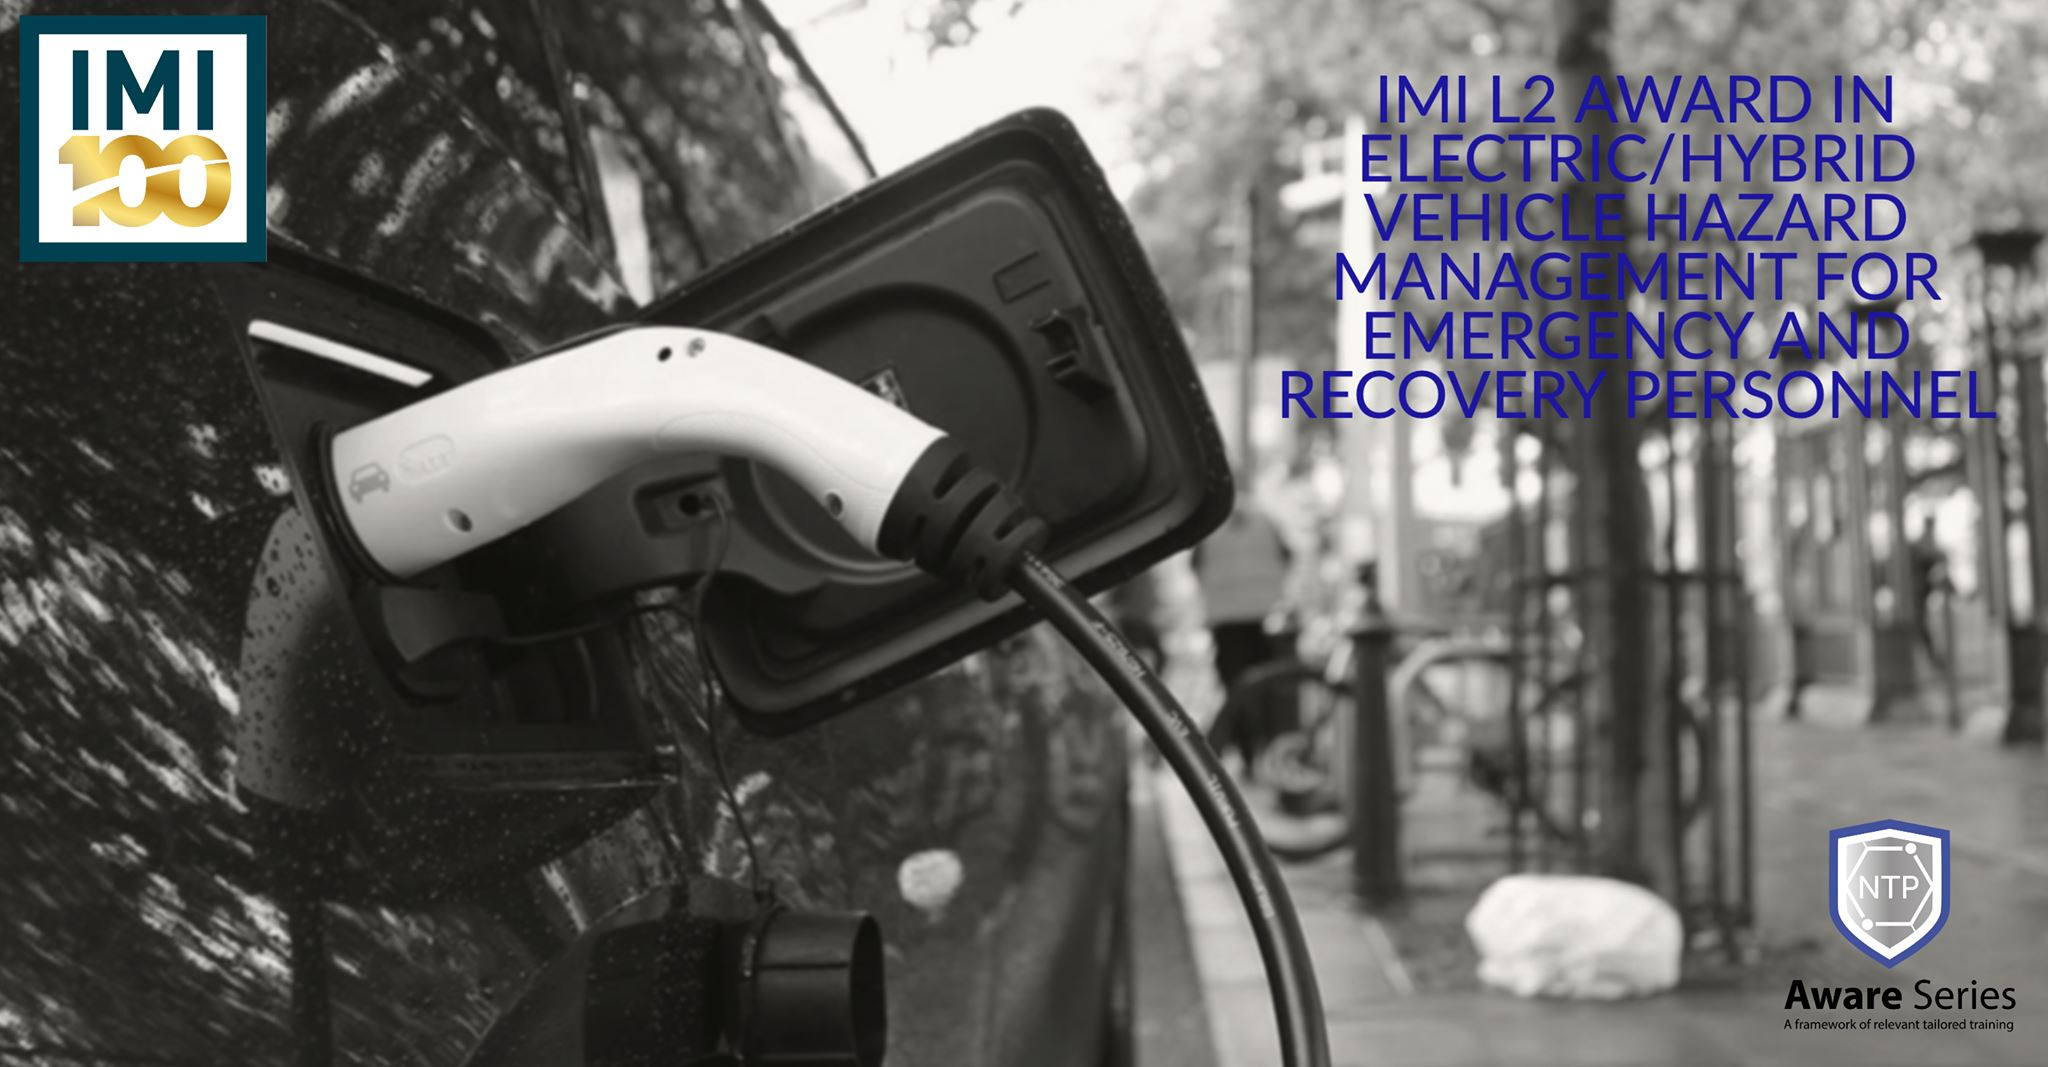 New IMI Electric Vehicle Level 2 qualification for the roadside and recovery industry